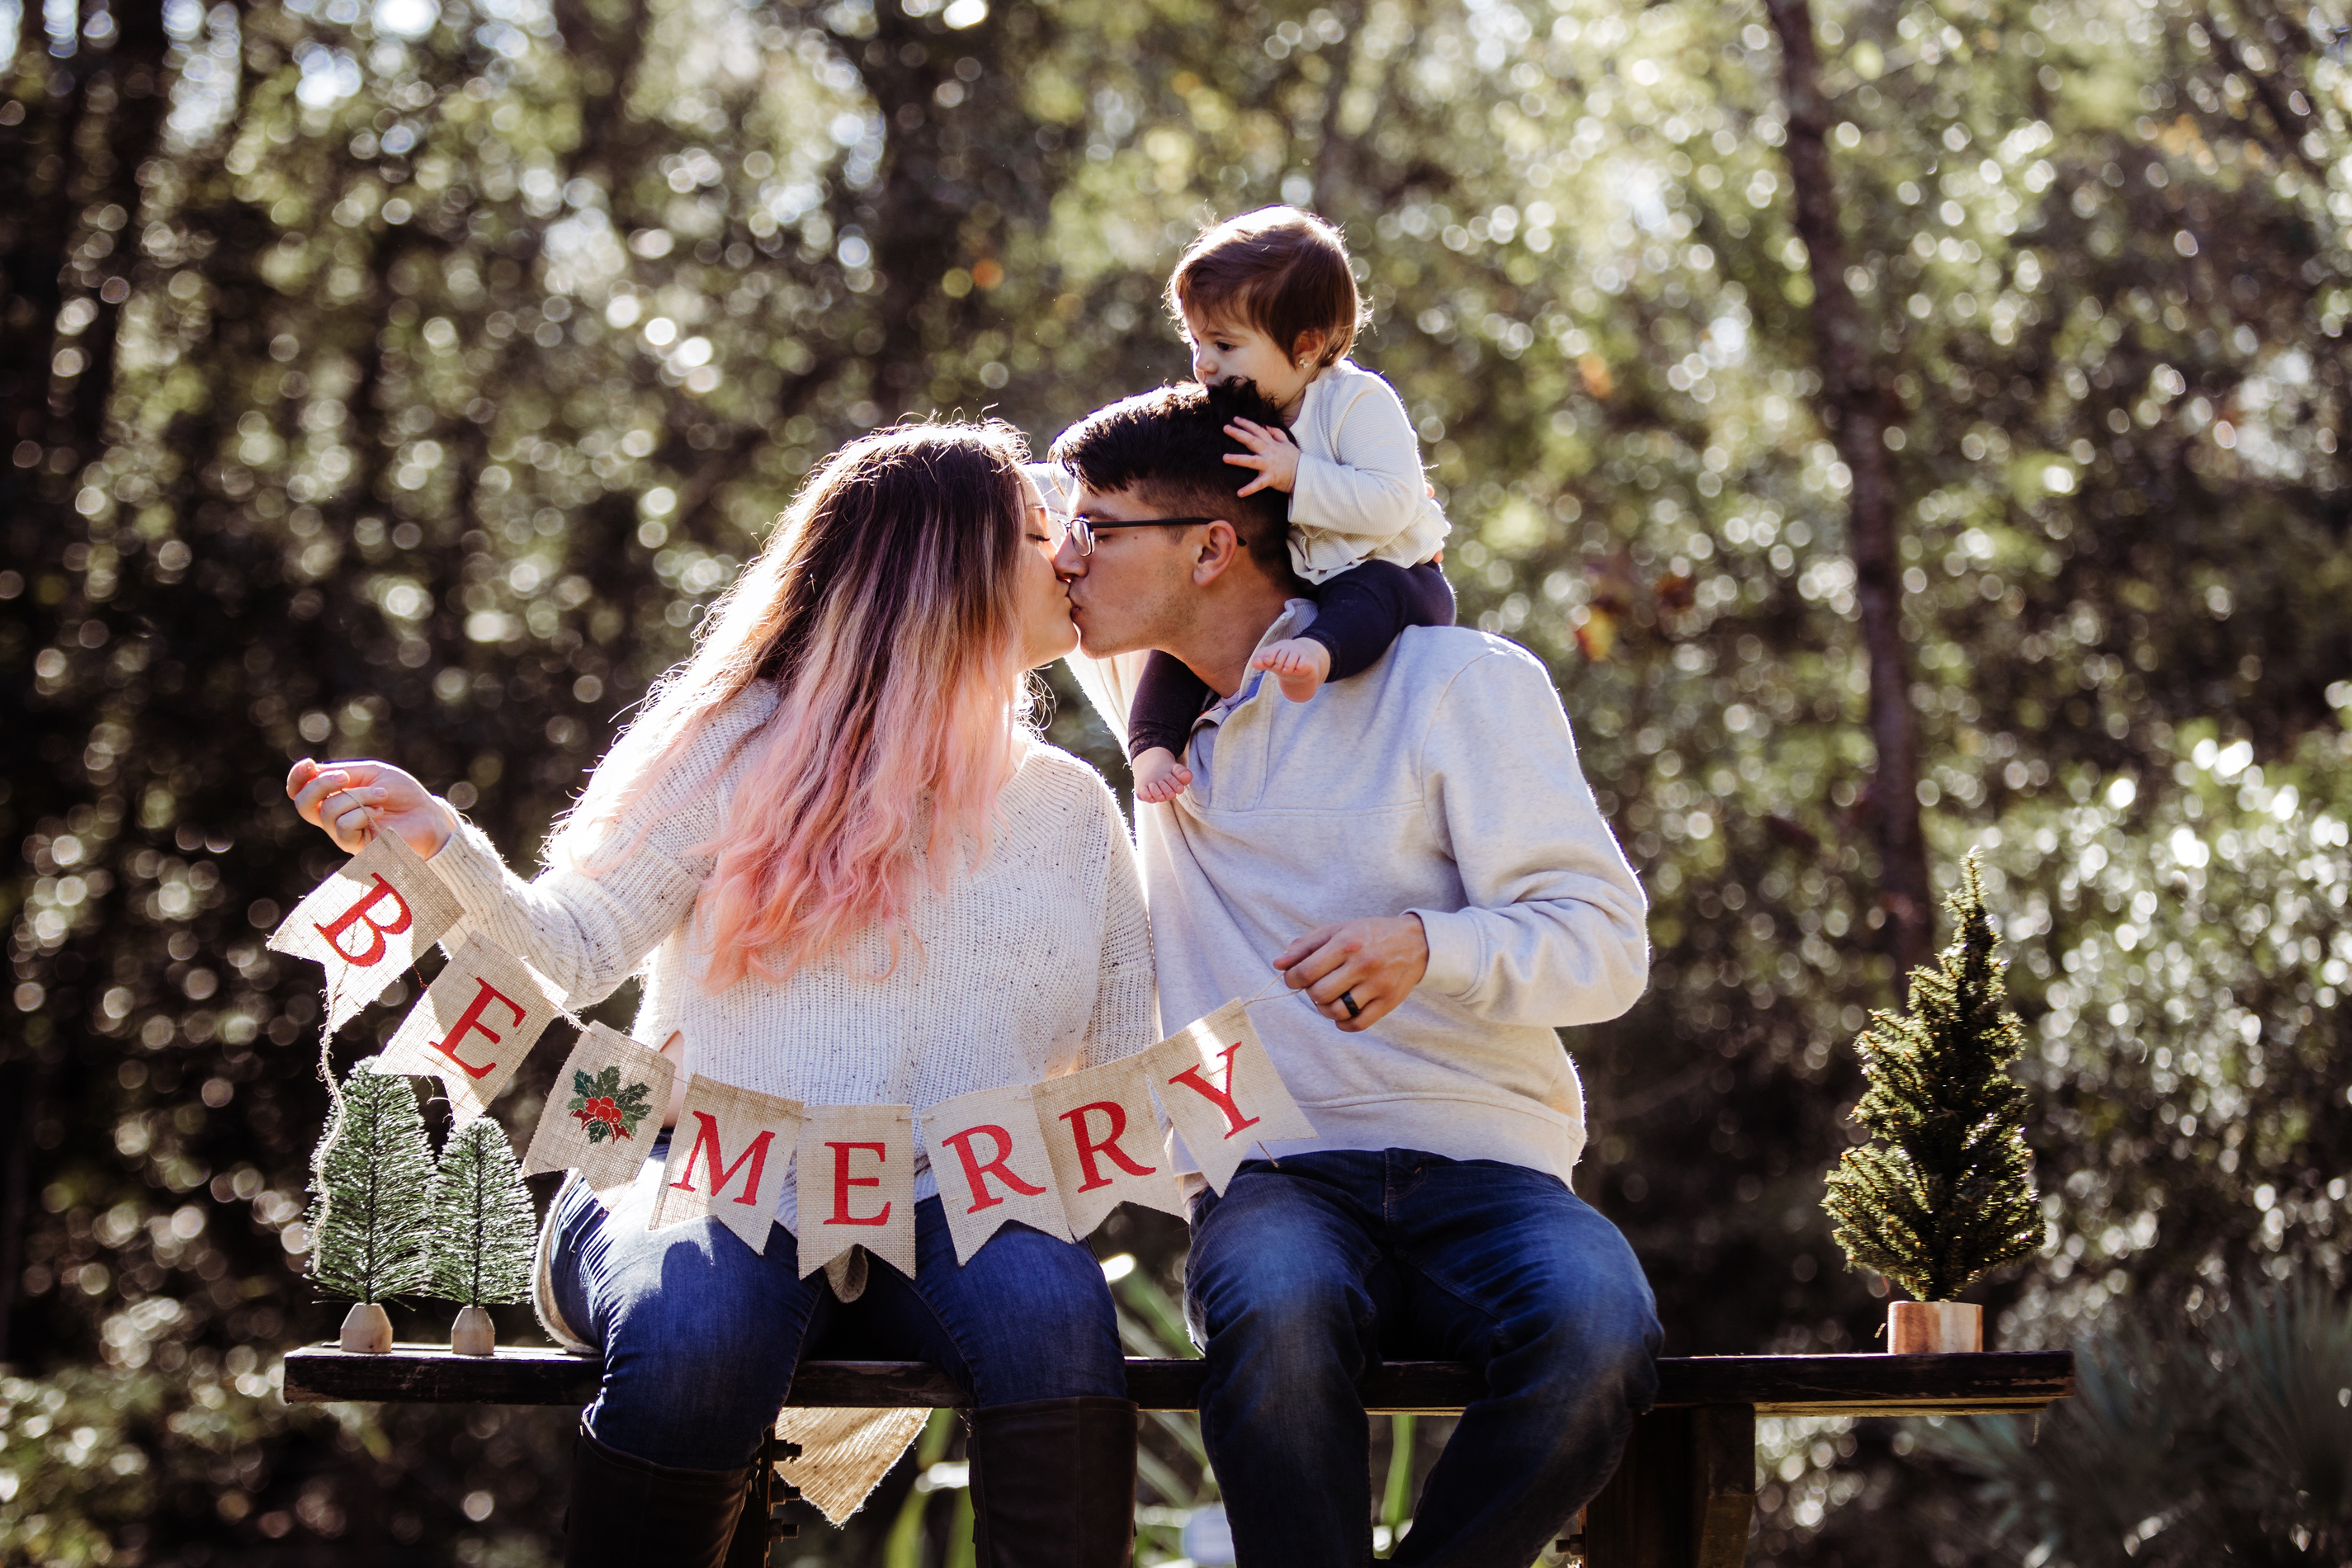 Family Photography and Children Photography, merry christmas family shot